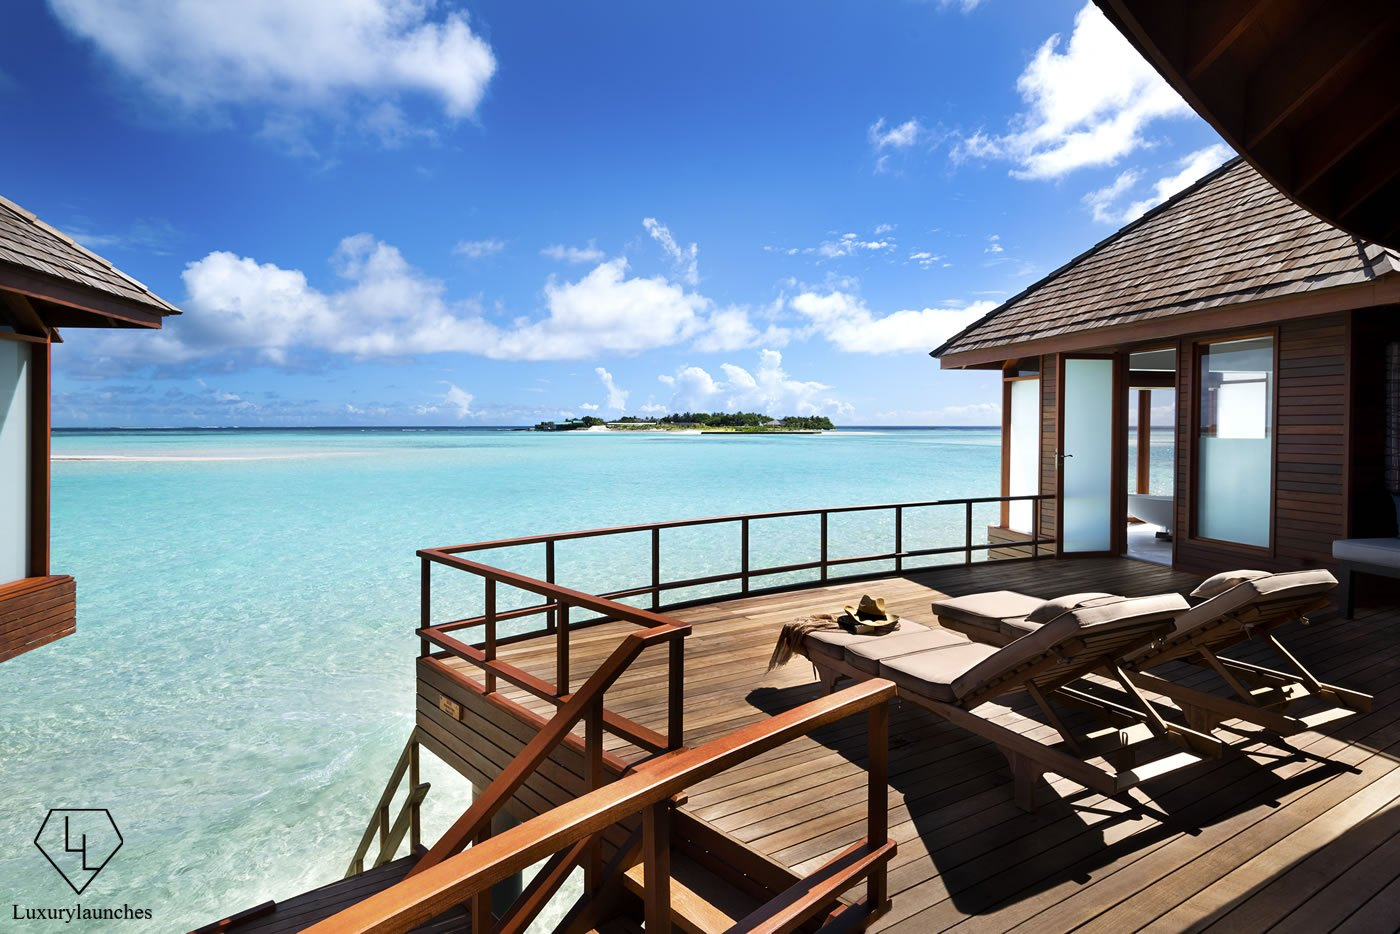 Anantara Dhigu Maldives Resort Reopens Sunsoaked Over Water Suites